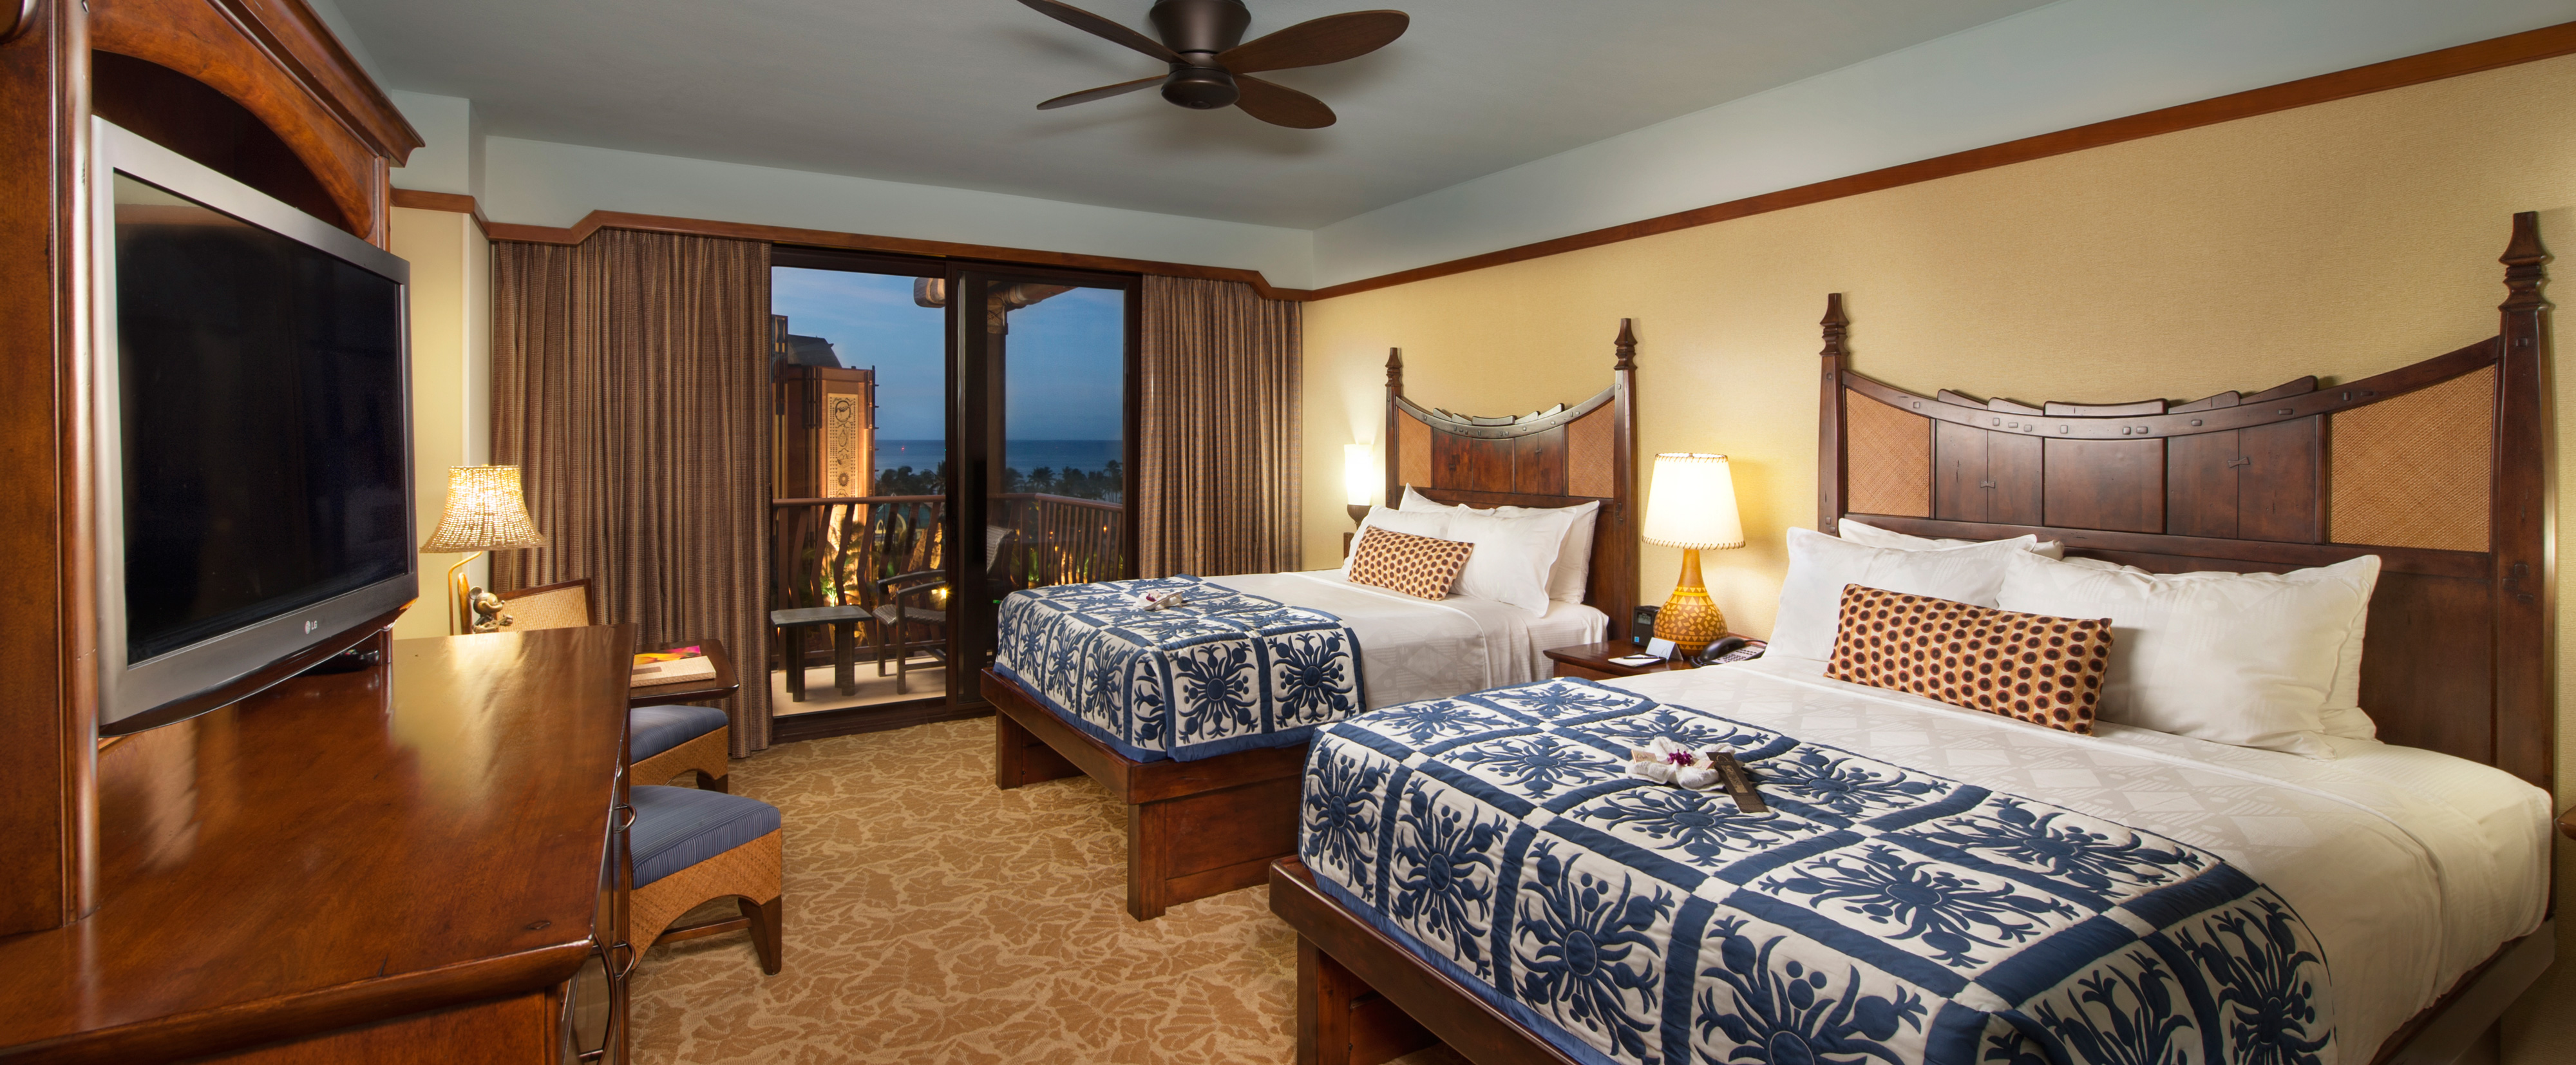 standard hotel rooms aulani hawaii resort spa